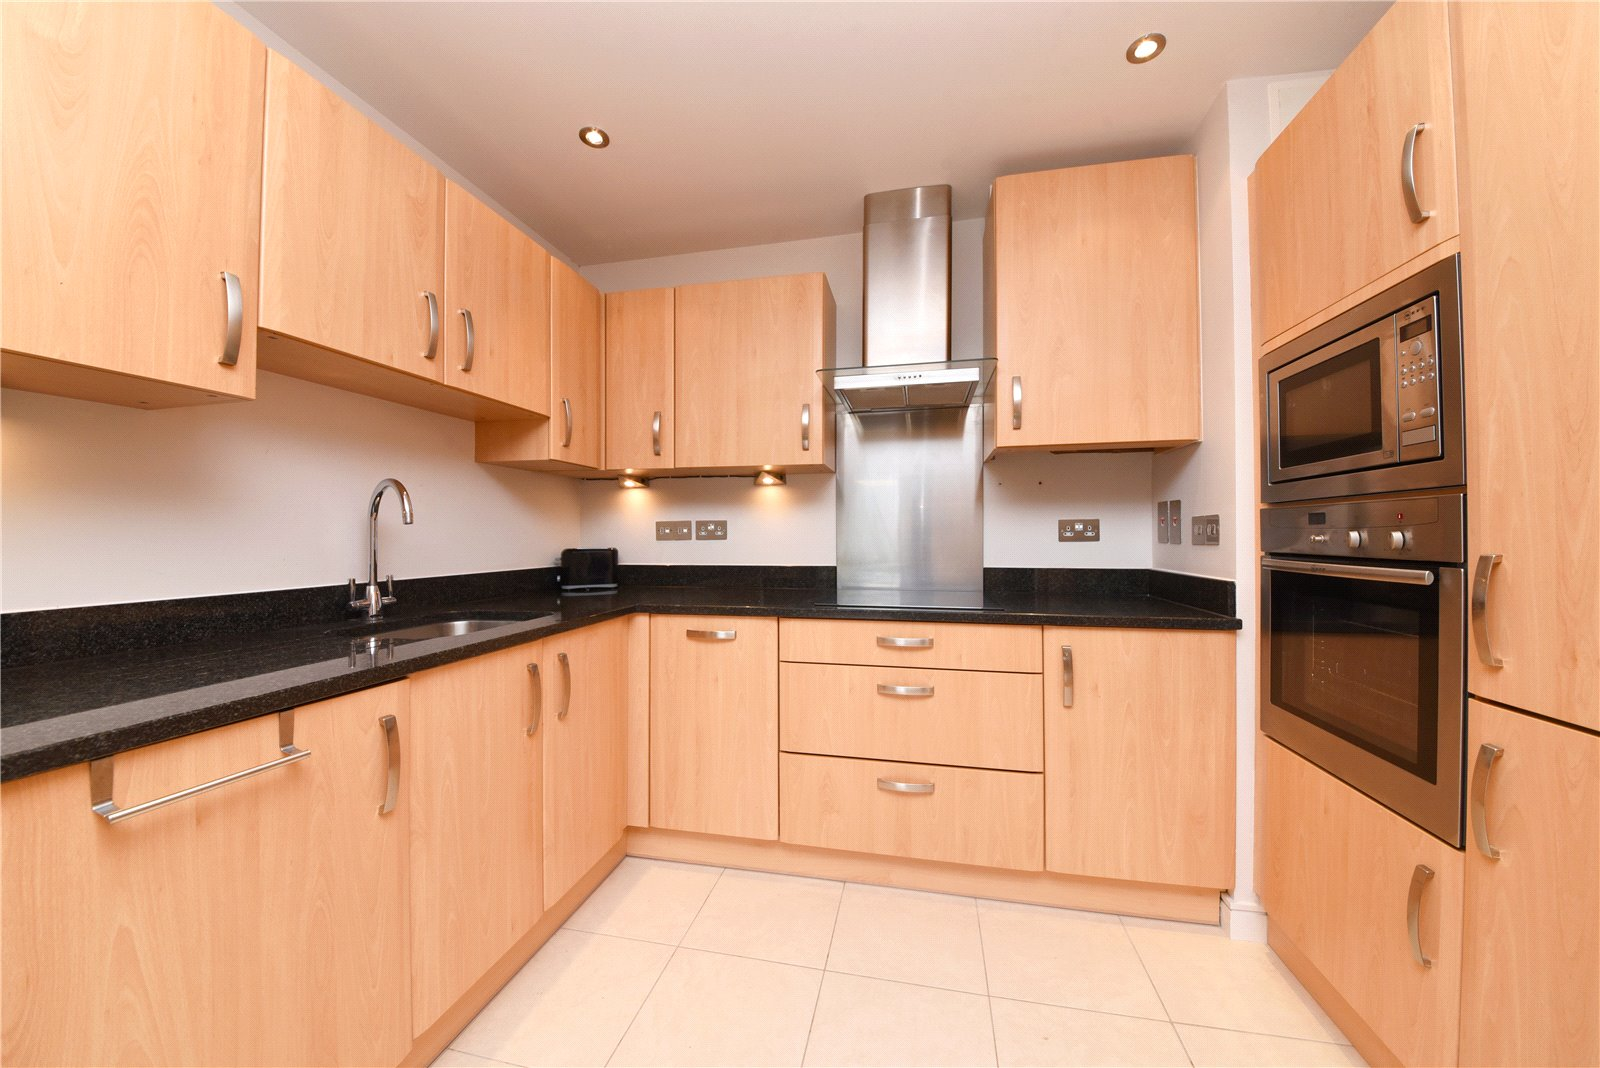 2 bed apartment for sale in Mill Hill East, NW7 1ND 1